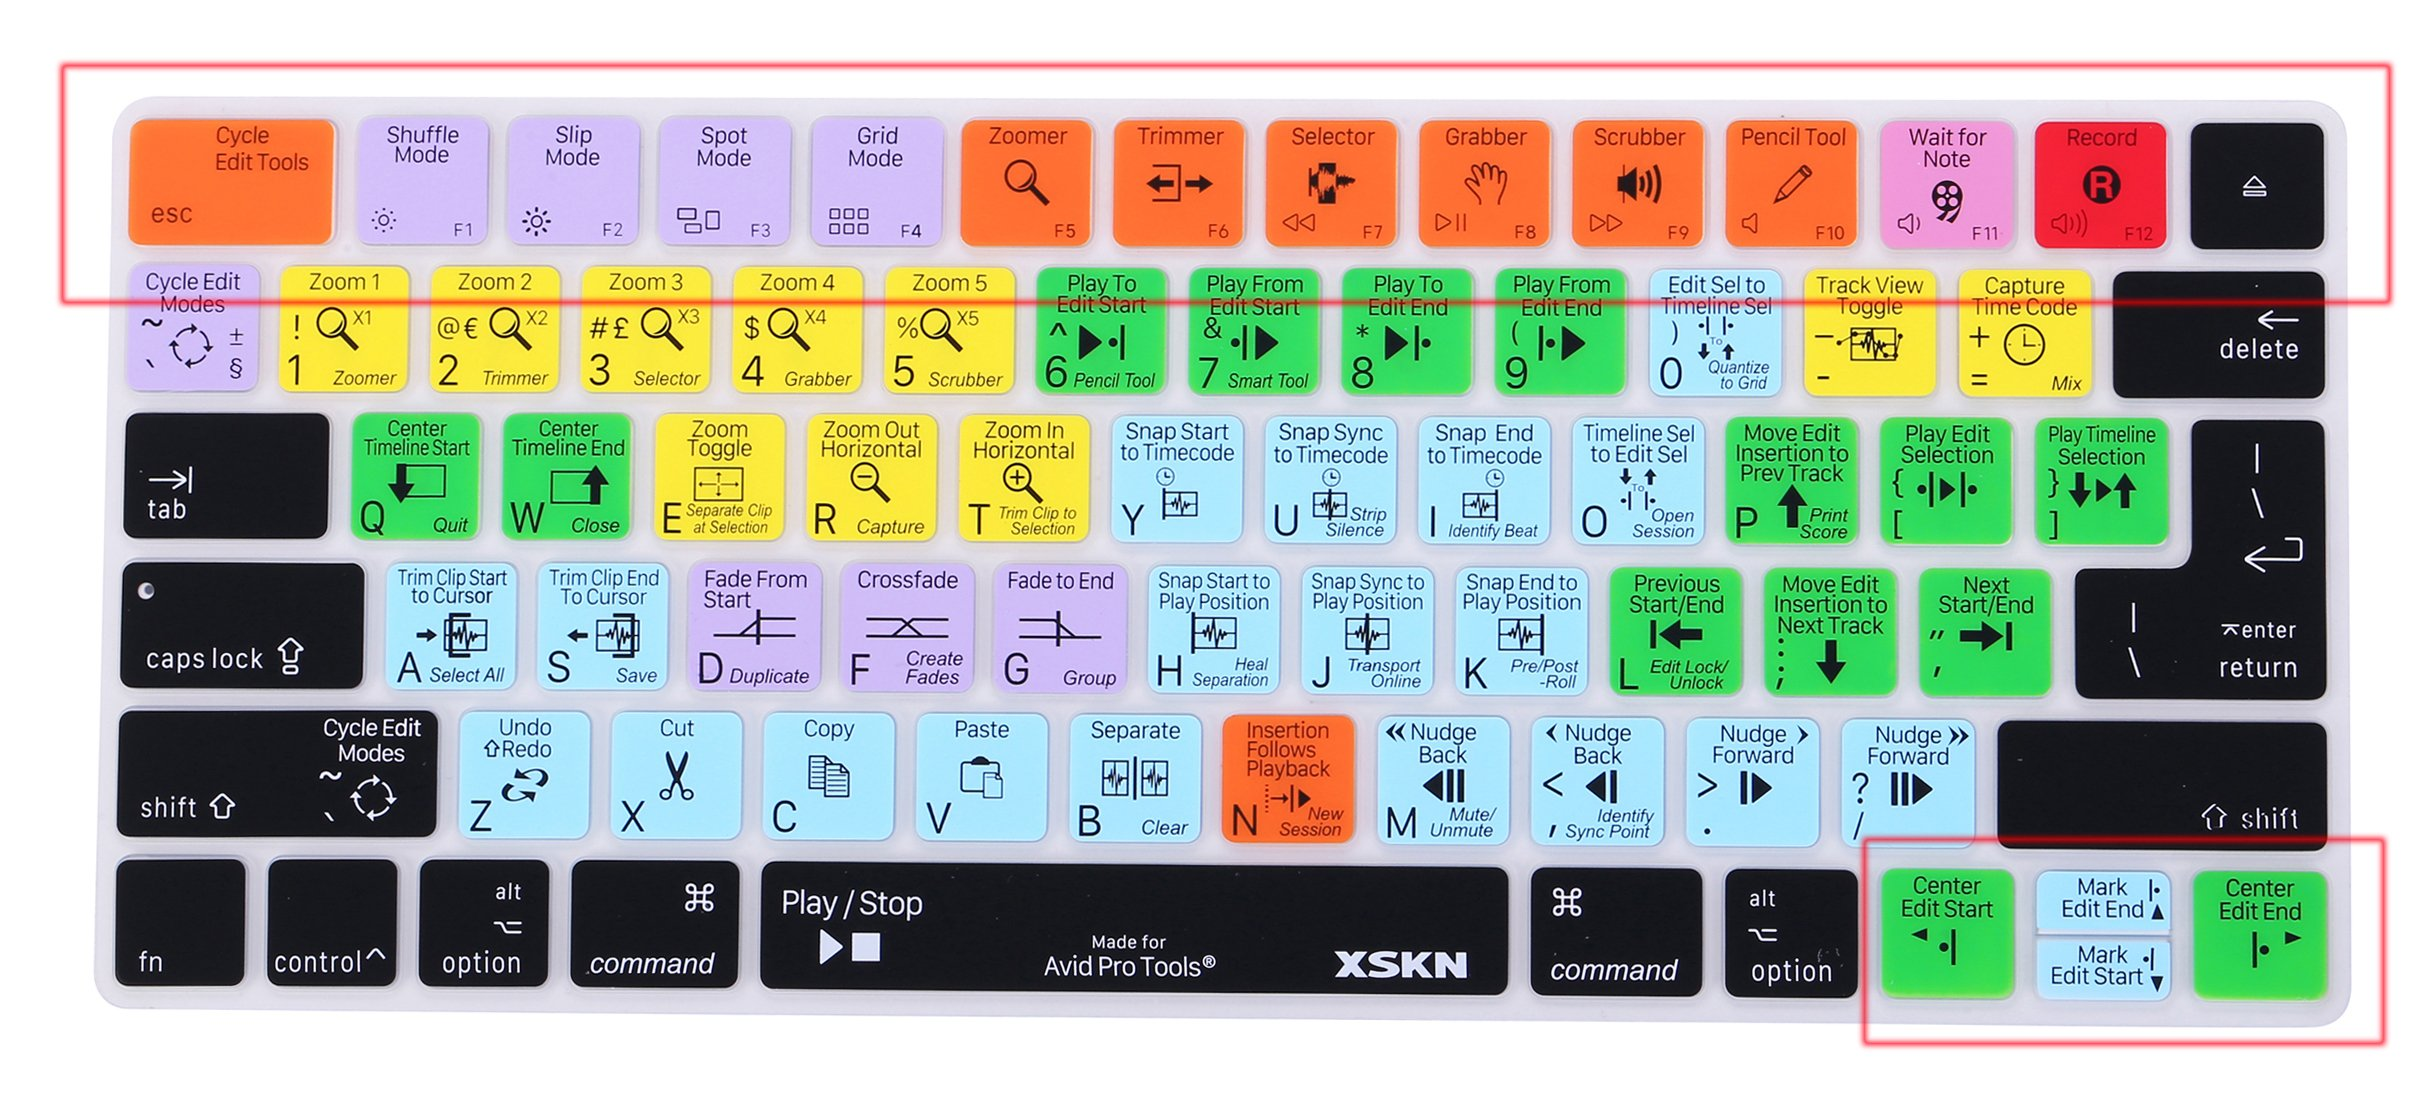 XSKN Magic Keyboard Avid Pro Tools Shortcut Keyboard Cover, Durable Avid Hotkeys Silicone Keyboard Skin for Apple Magic Keyboard MLA22LL/A by XSKN (Image #9)